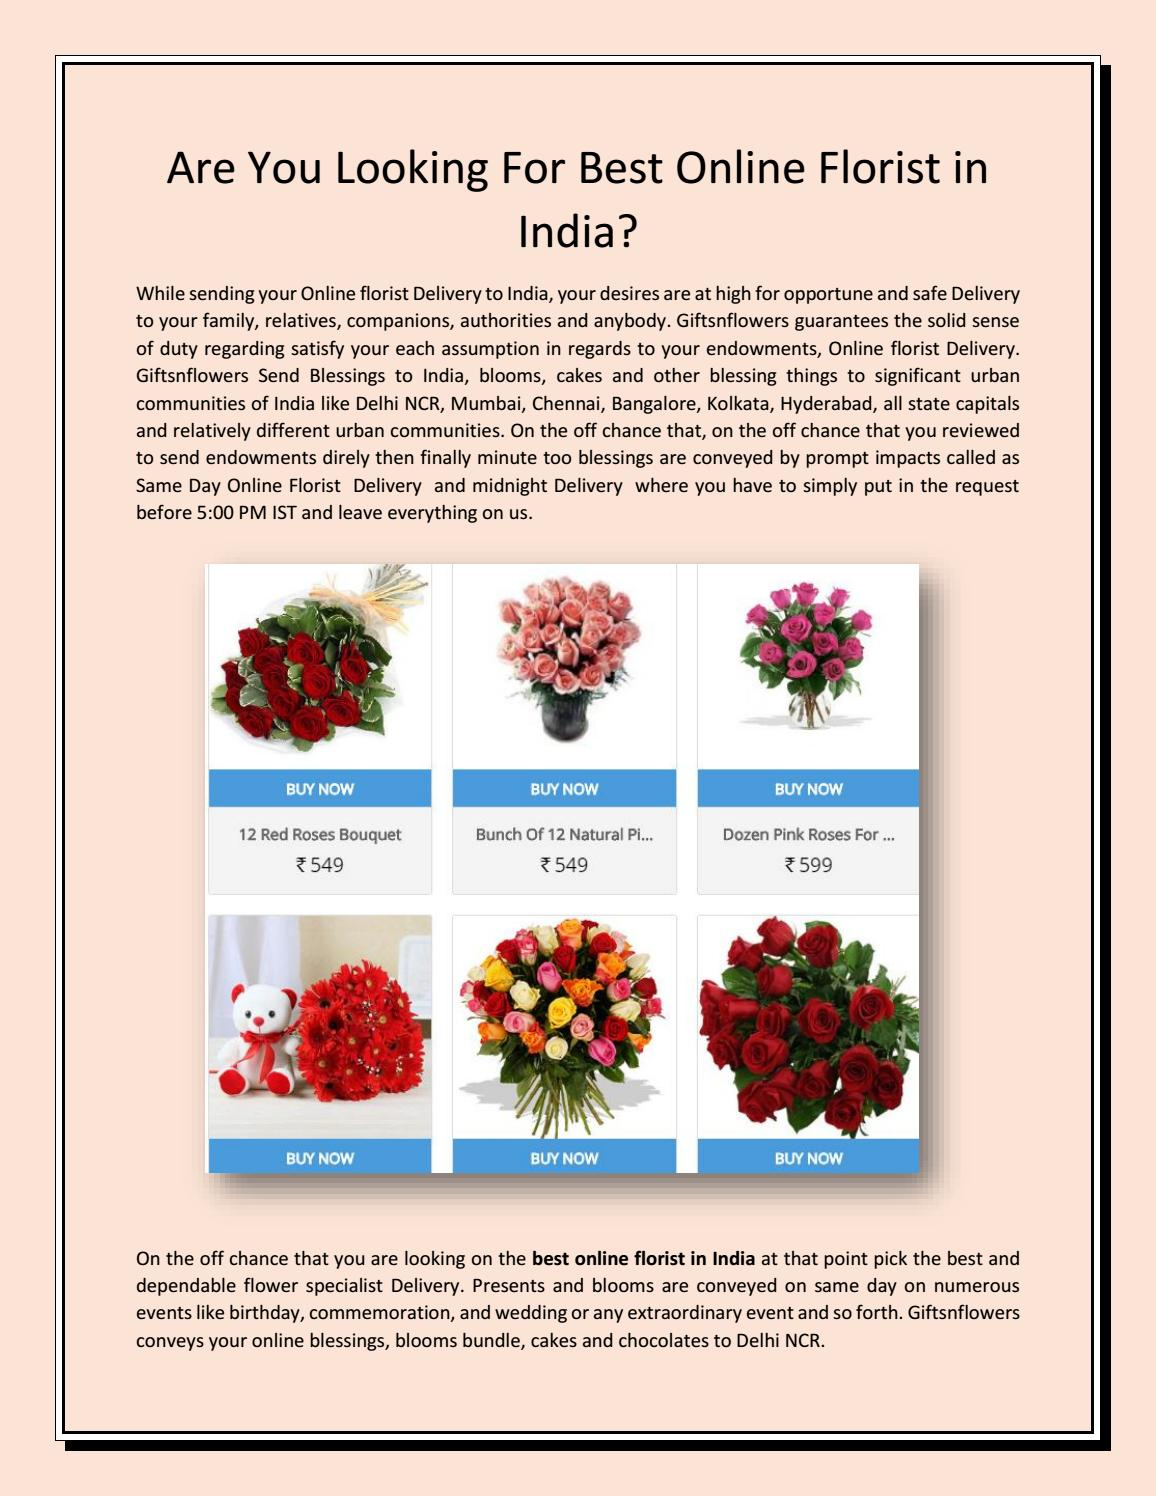 Are You Looking For Best Online Florist In India By Gifts N Flowers